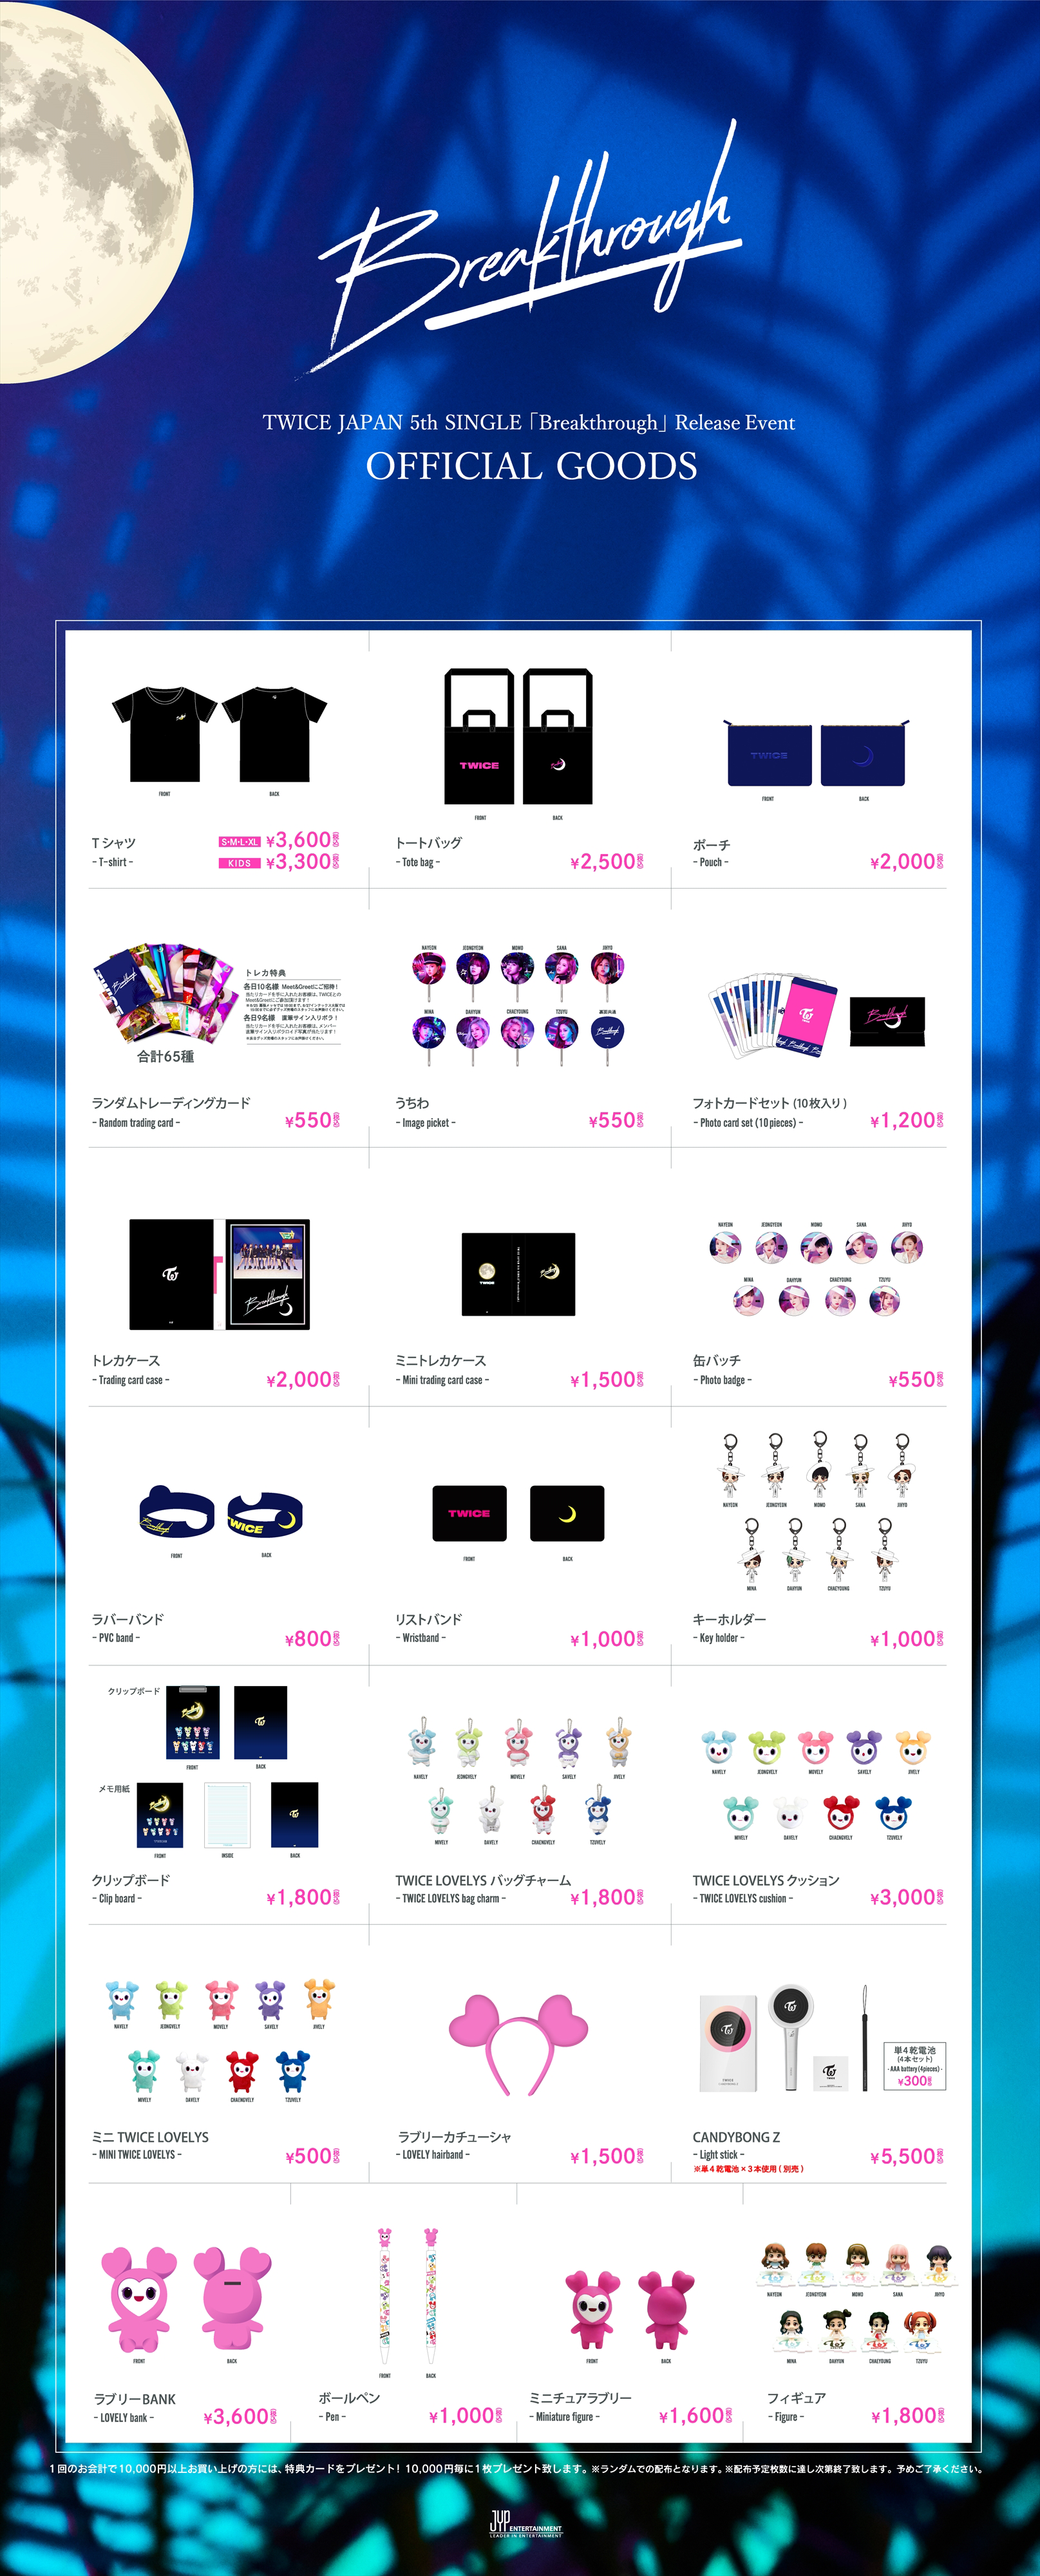 TWICE Breakthrough release event official goods.png